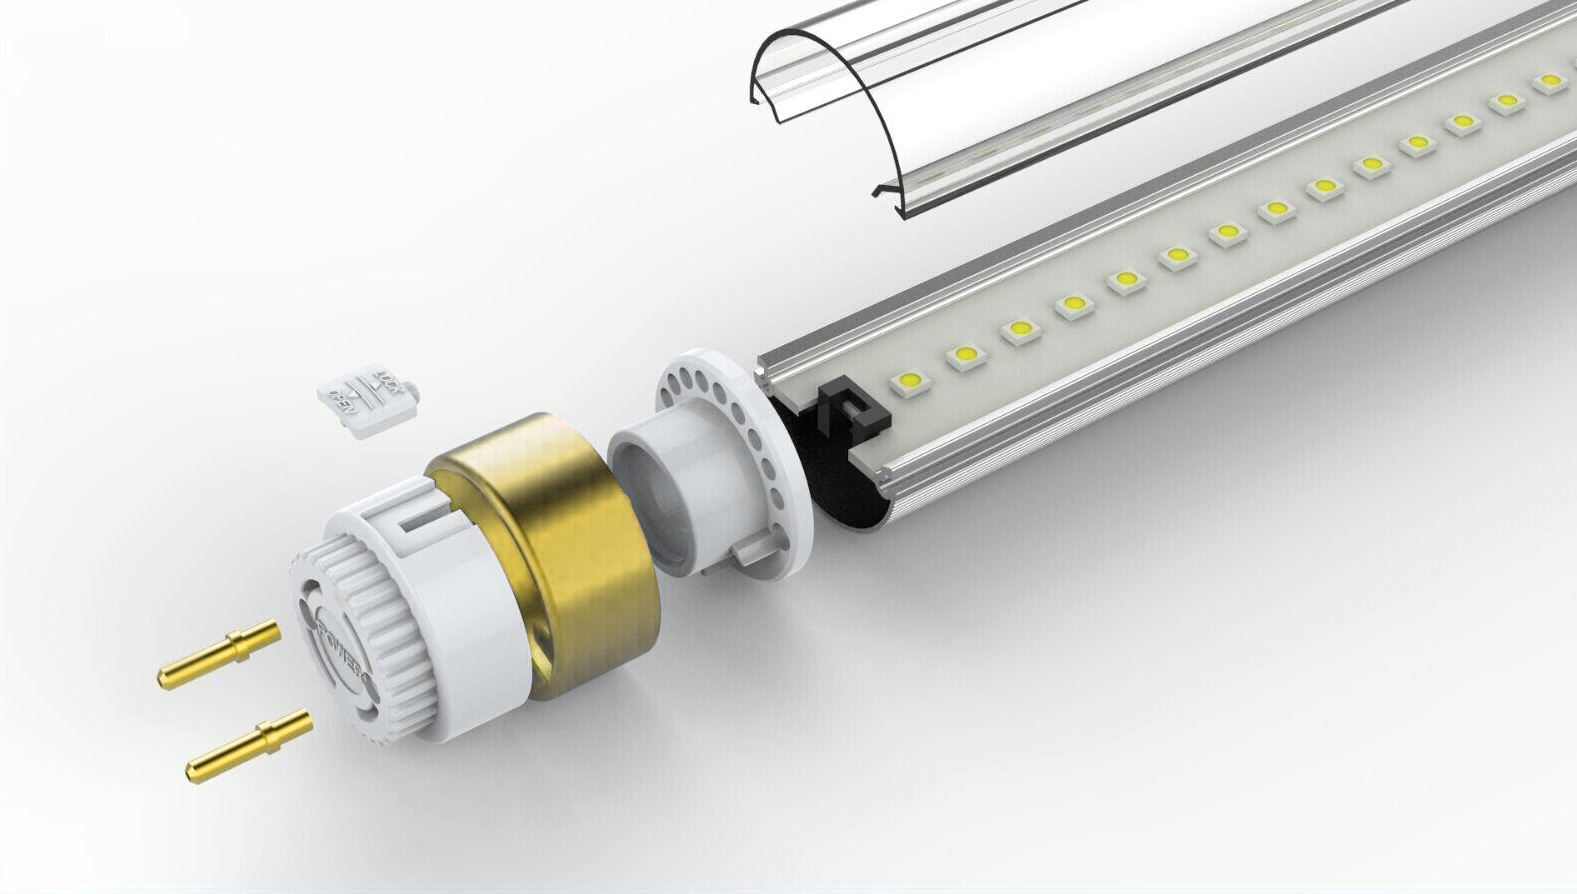 Emejing Duurzame Led Verlichting Contemporary - Huis & Interieur ...